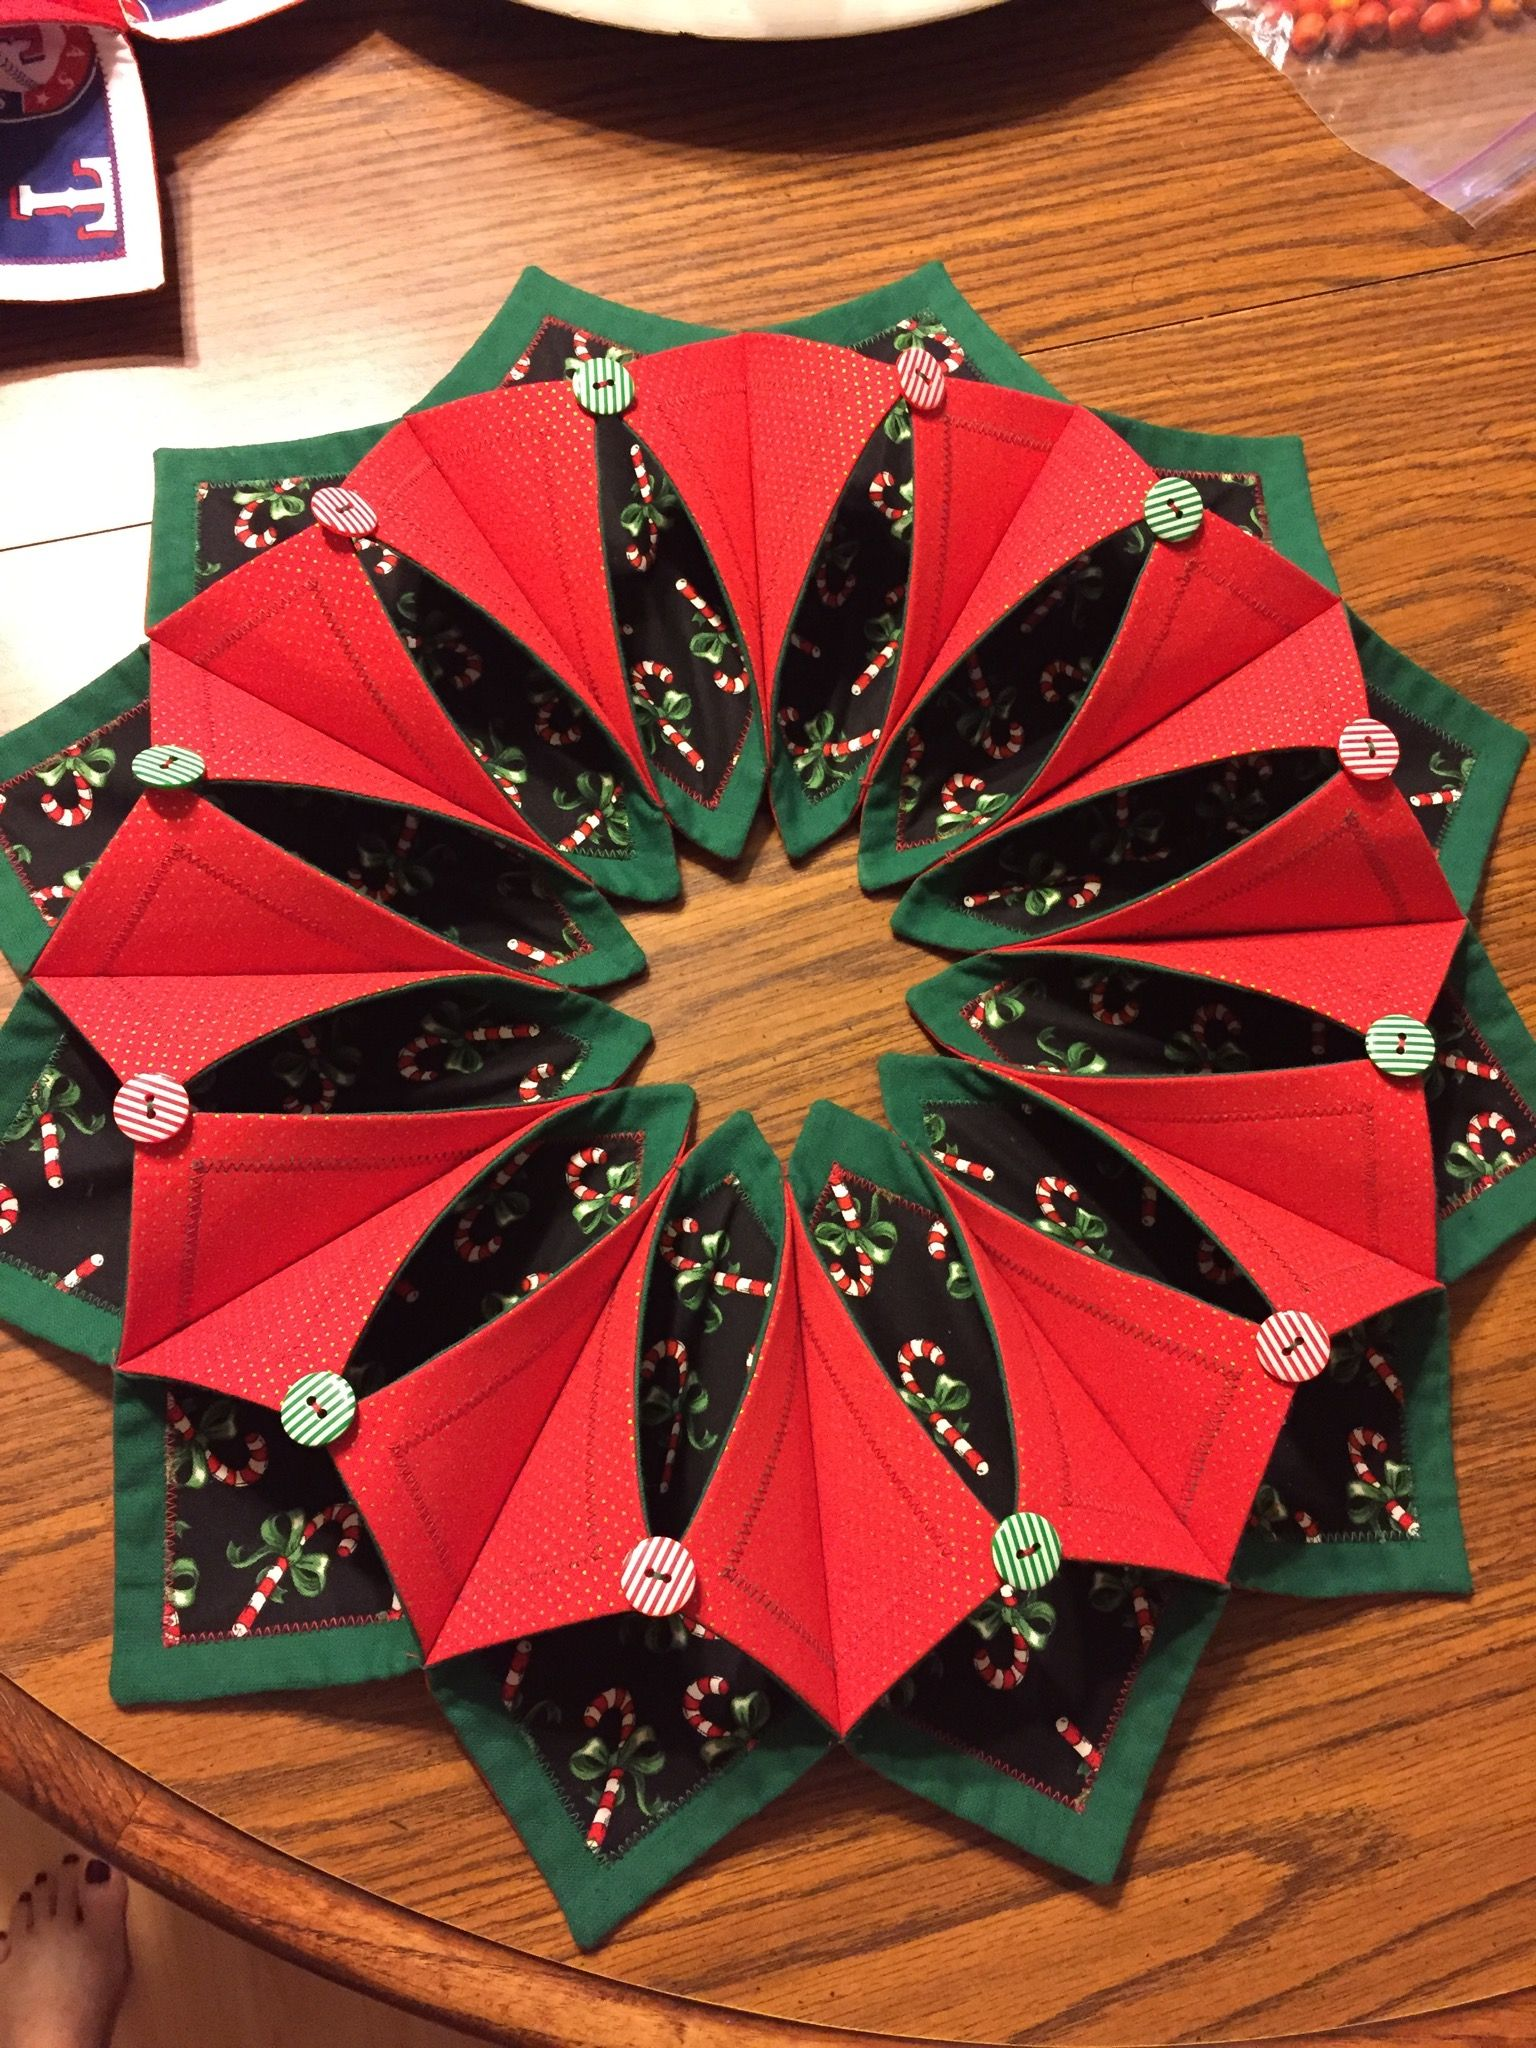 Folded fabric christmas ornaments patterns - Browse Fold N Stitch Patterns At Annie S Https Www Anniescatalog